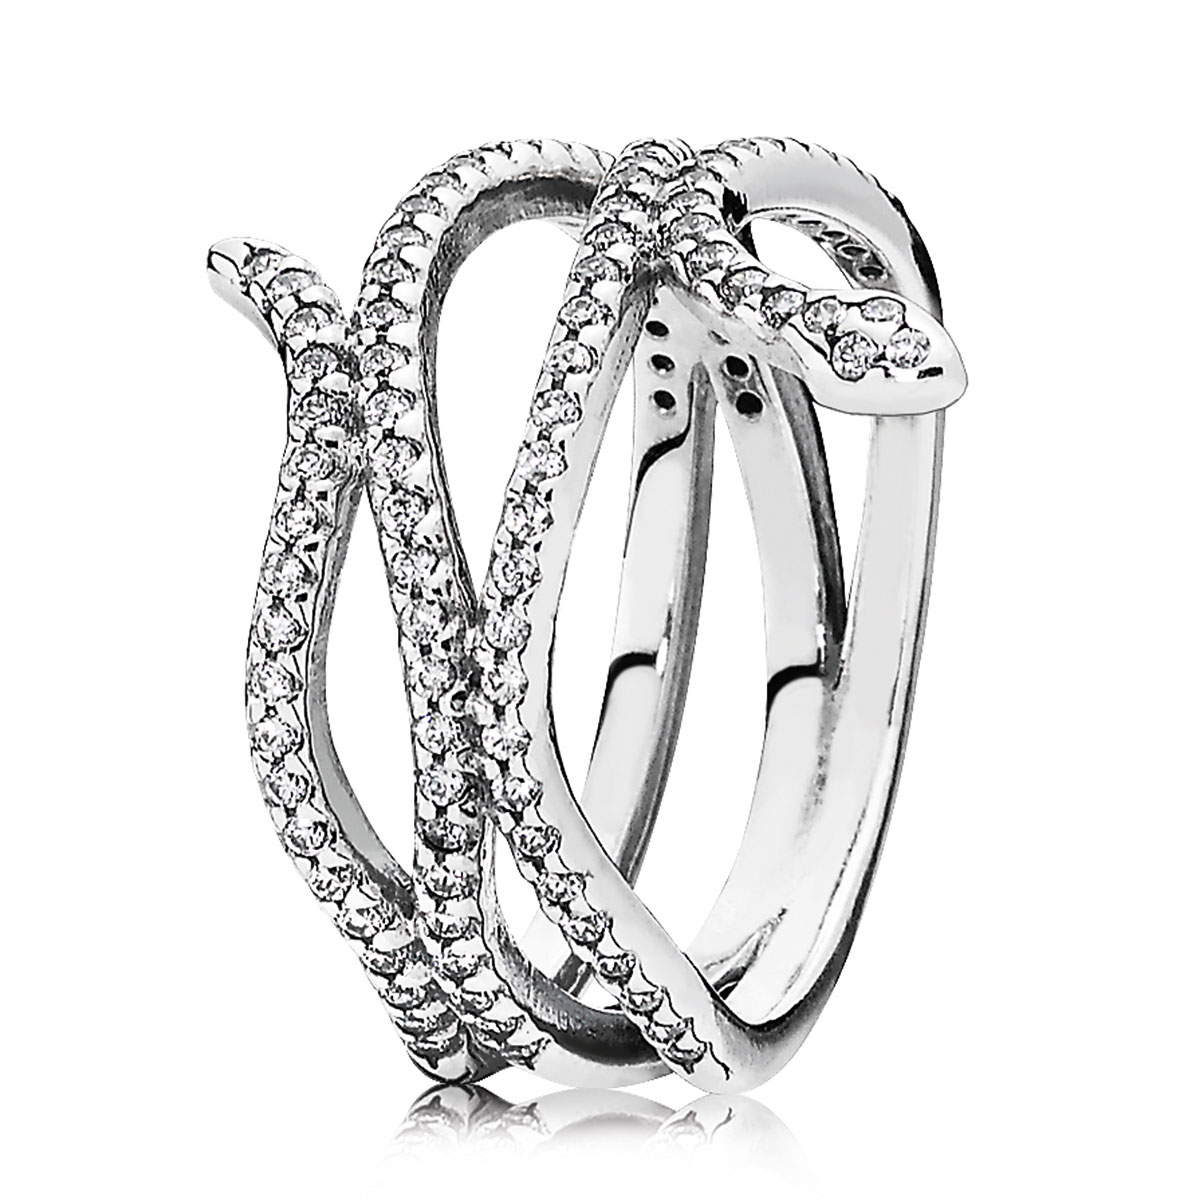 PANDORA Swirling Snake with Clear CZ Ring